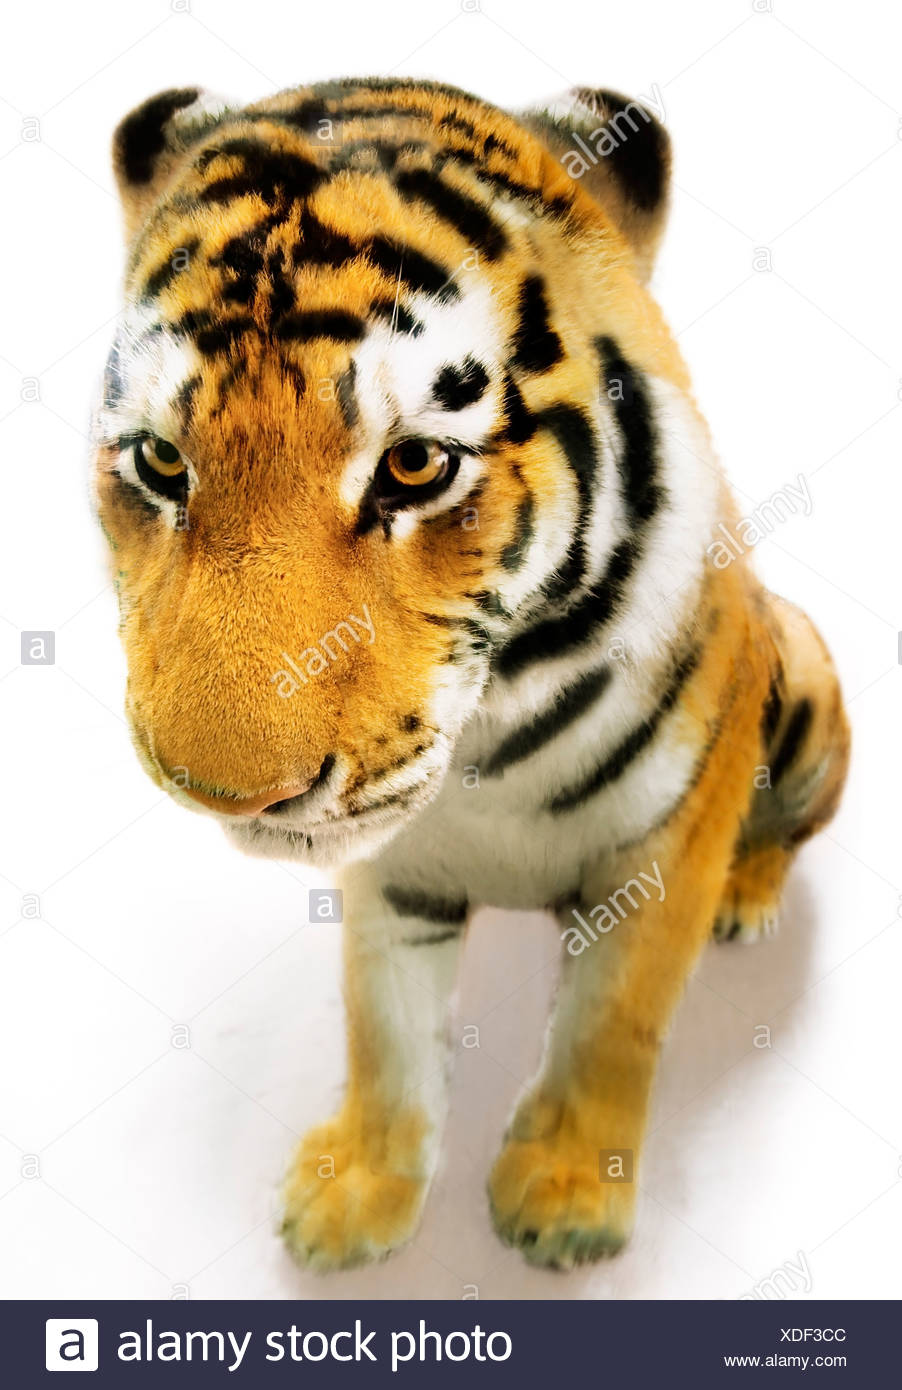 Realistic Looking Toy Tiger - Stock Image